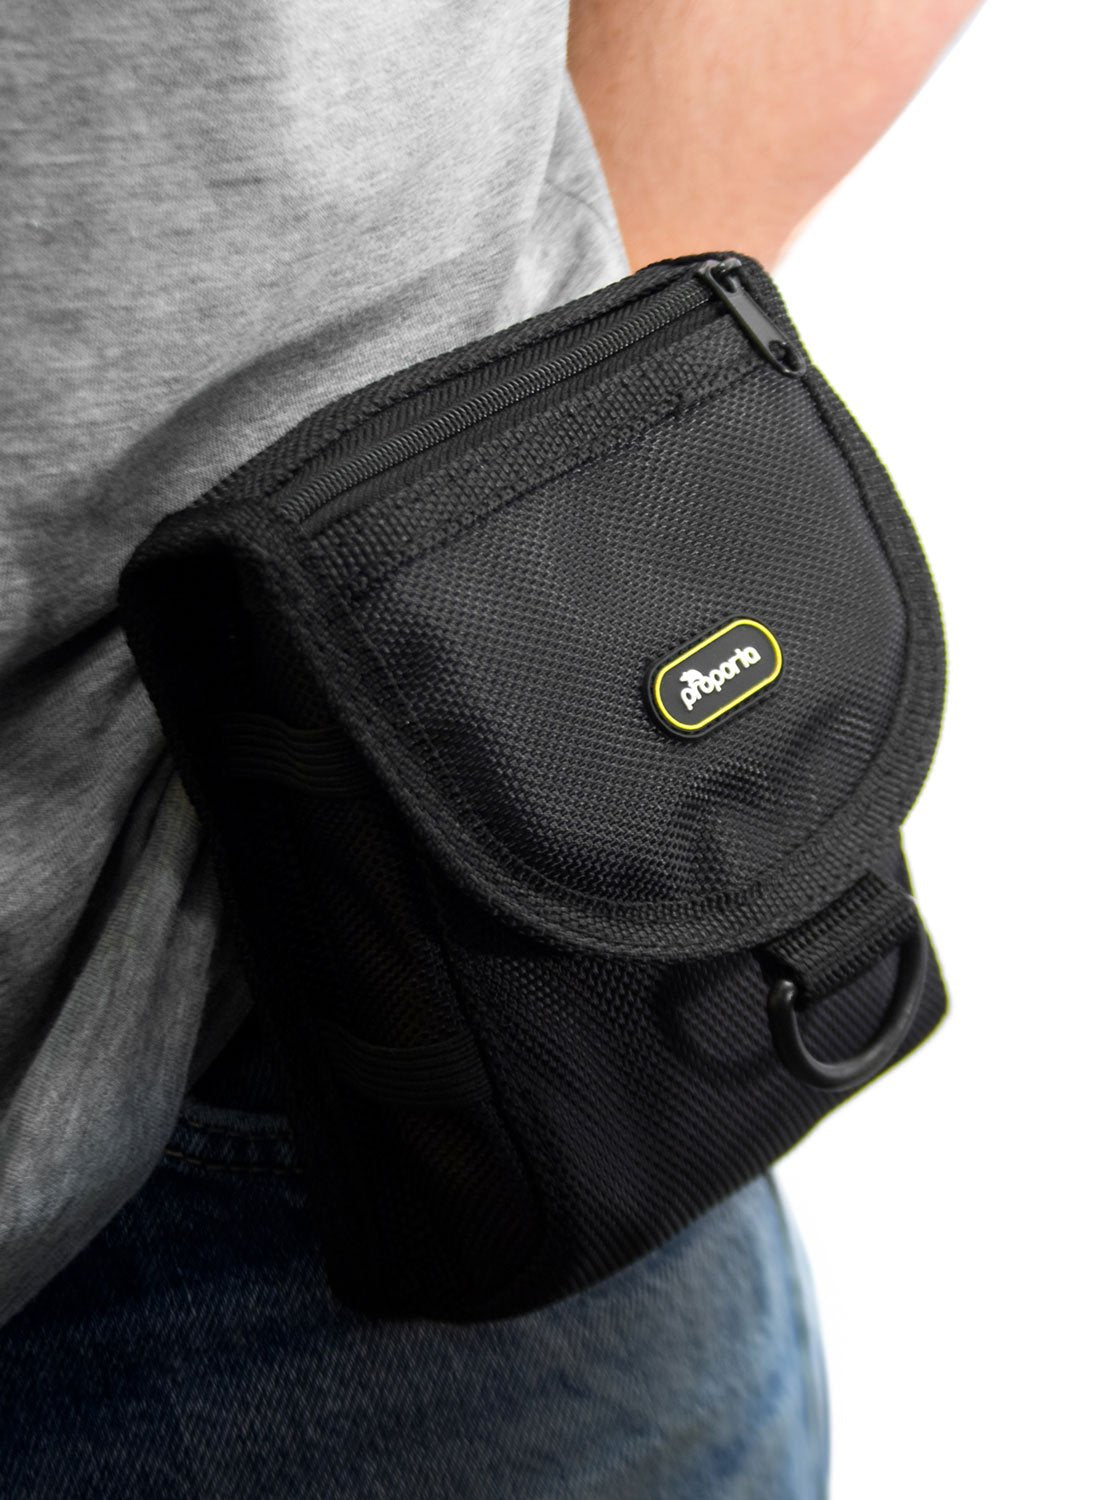 Lifestyle image of the Proporta Universal bag in Black